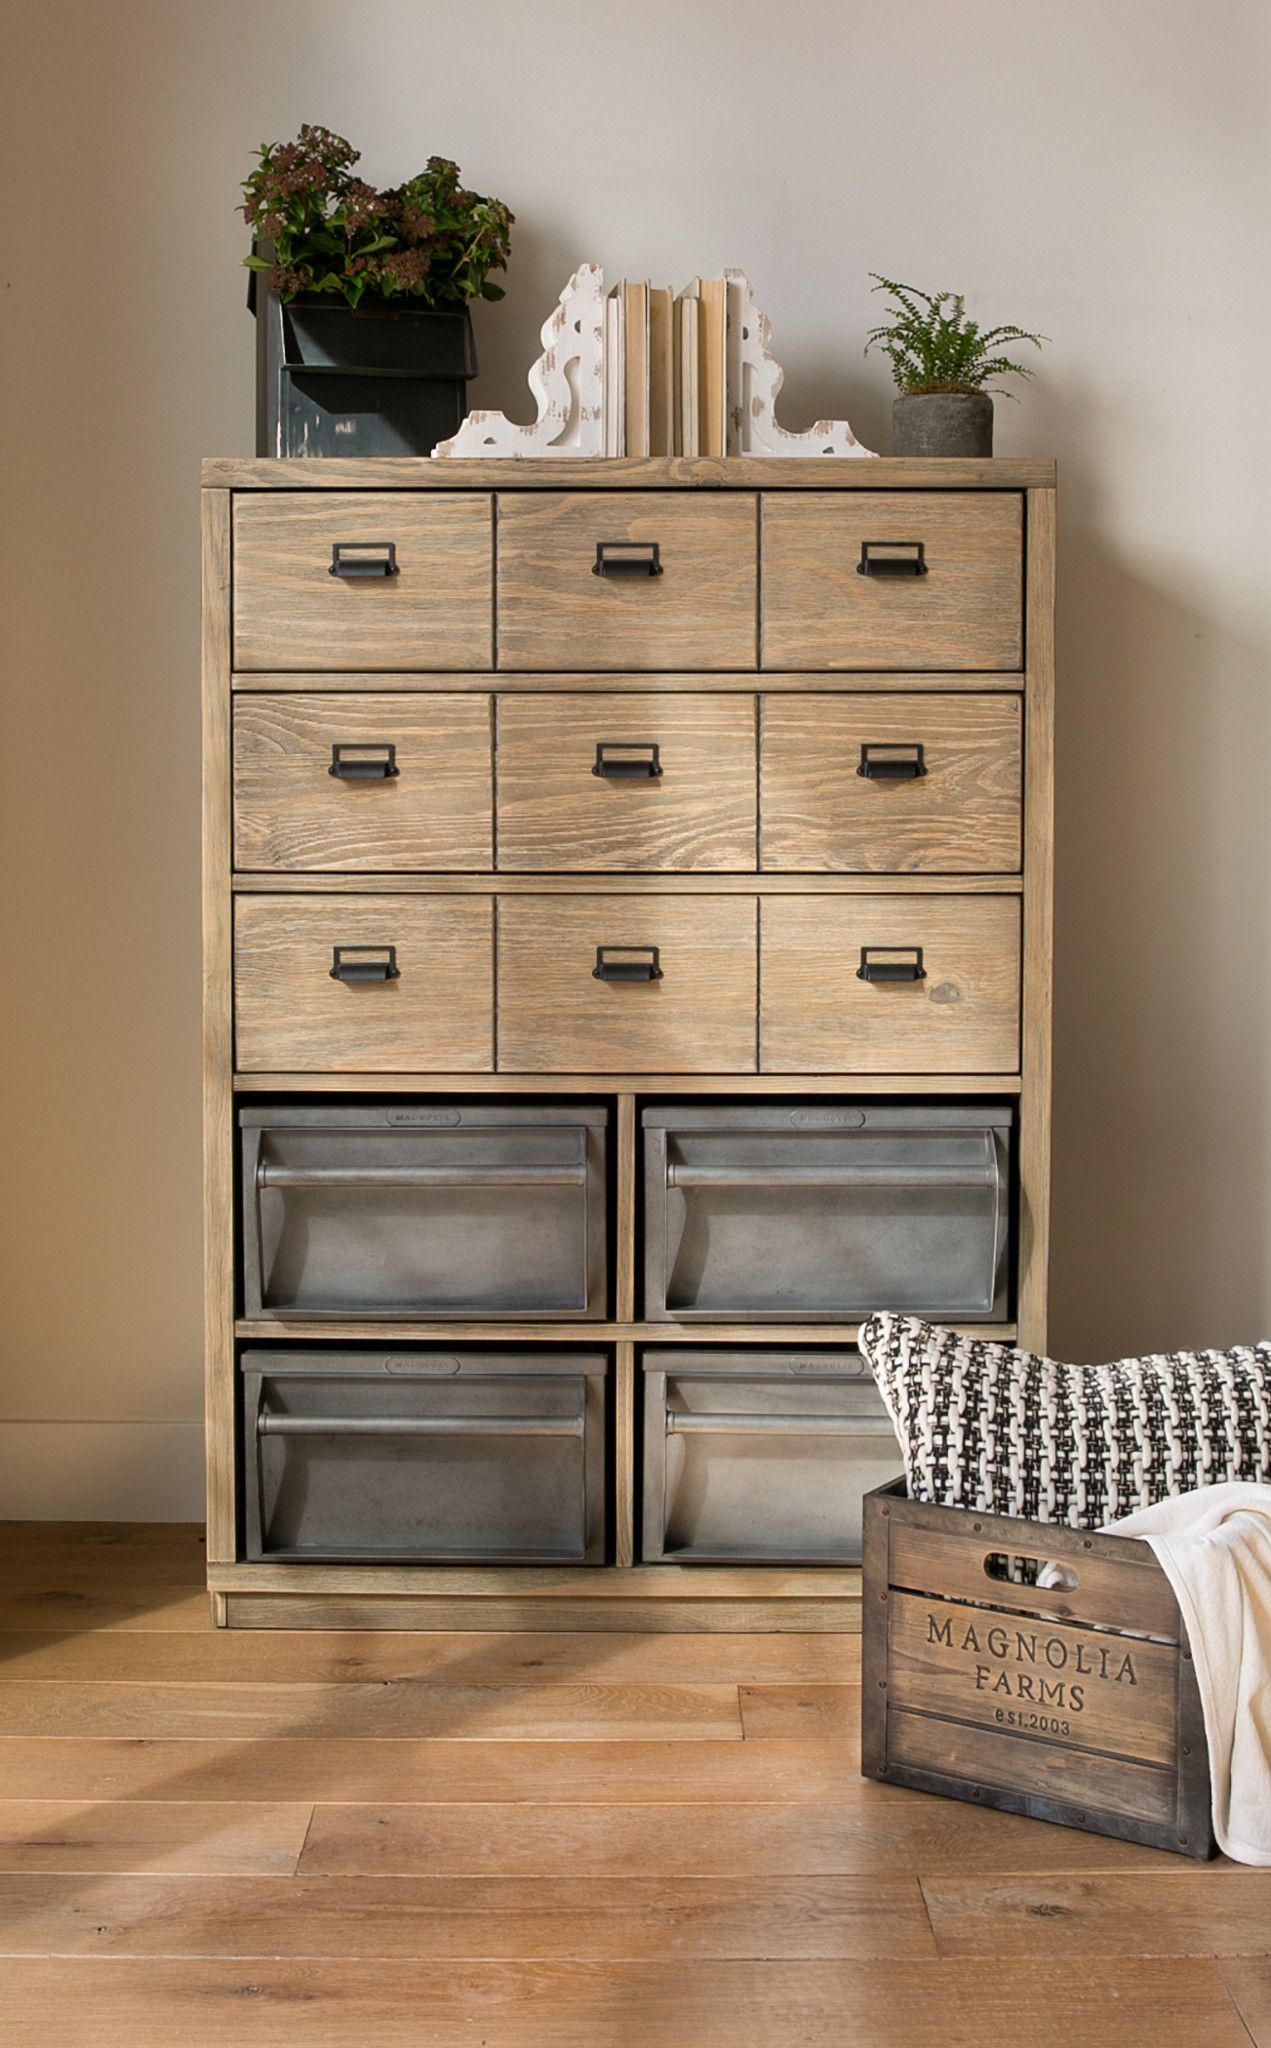 Magnolia Home Workshop Chest With Metal Binsjoanna Gaines With Magnolia Home Paradigm Sofa Chairs By Joanna Gaines (View 24 of 25)